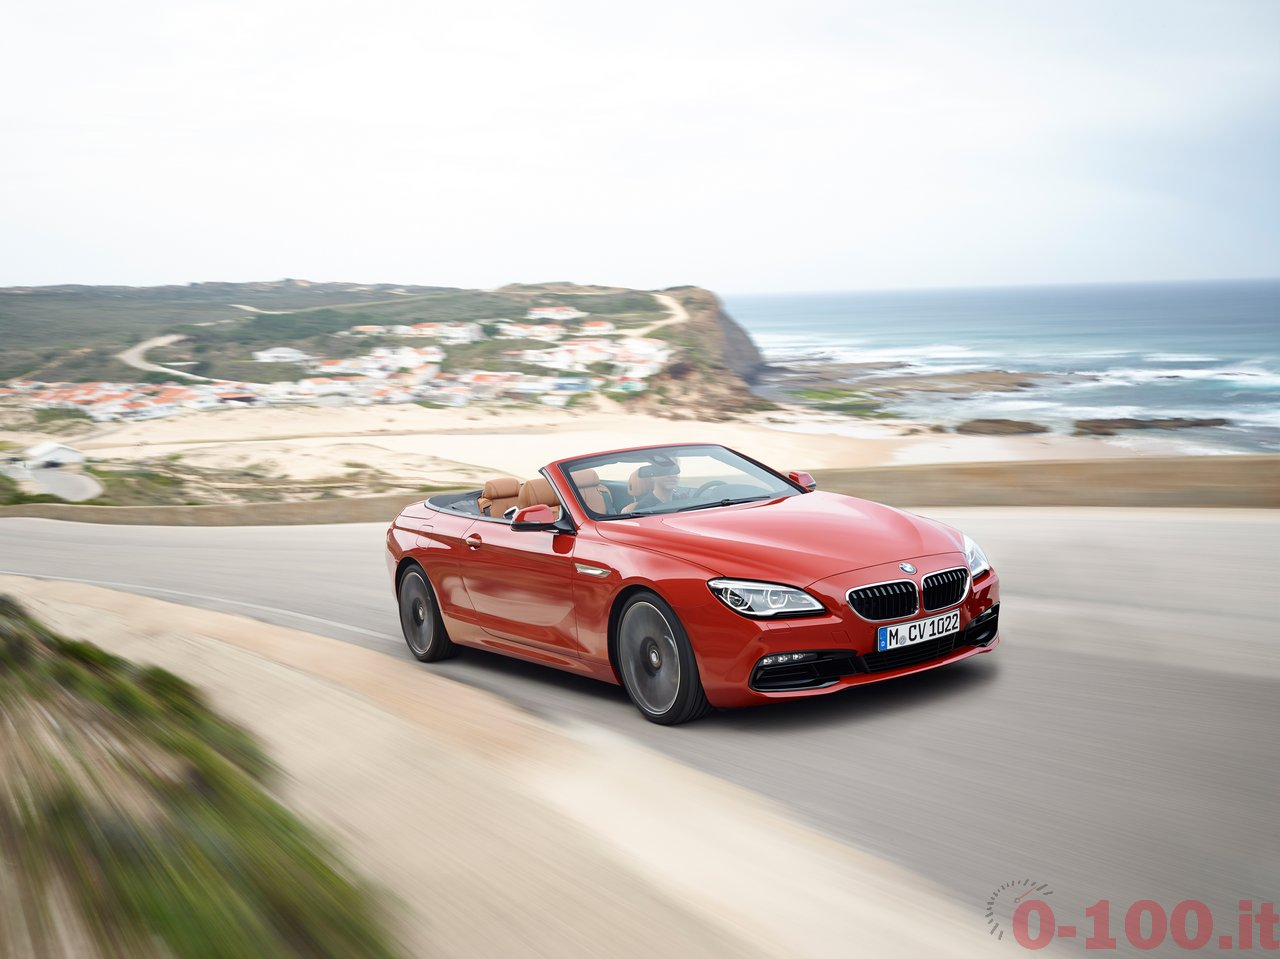 BMW-series-6-model-year-2015-gran-coupe-cabriolet-naias-detroit-0-100_30